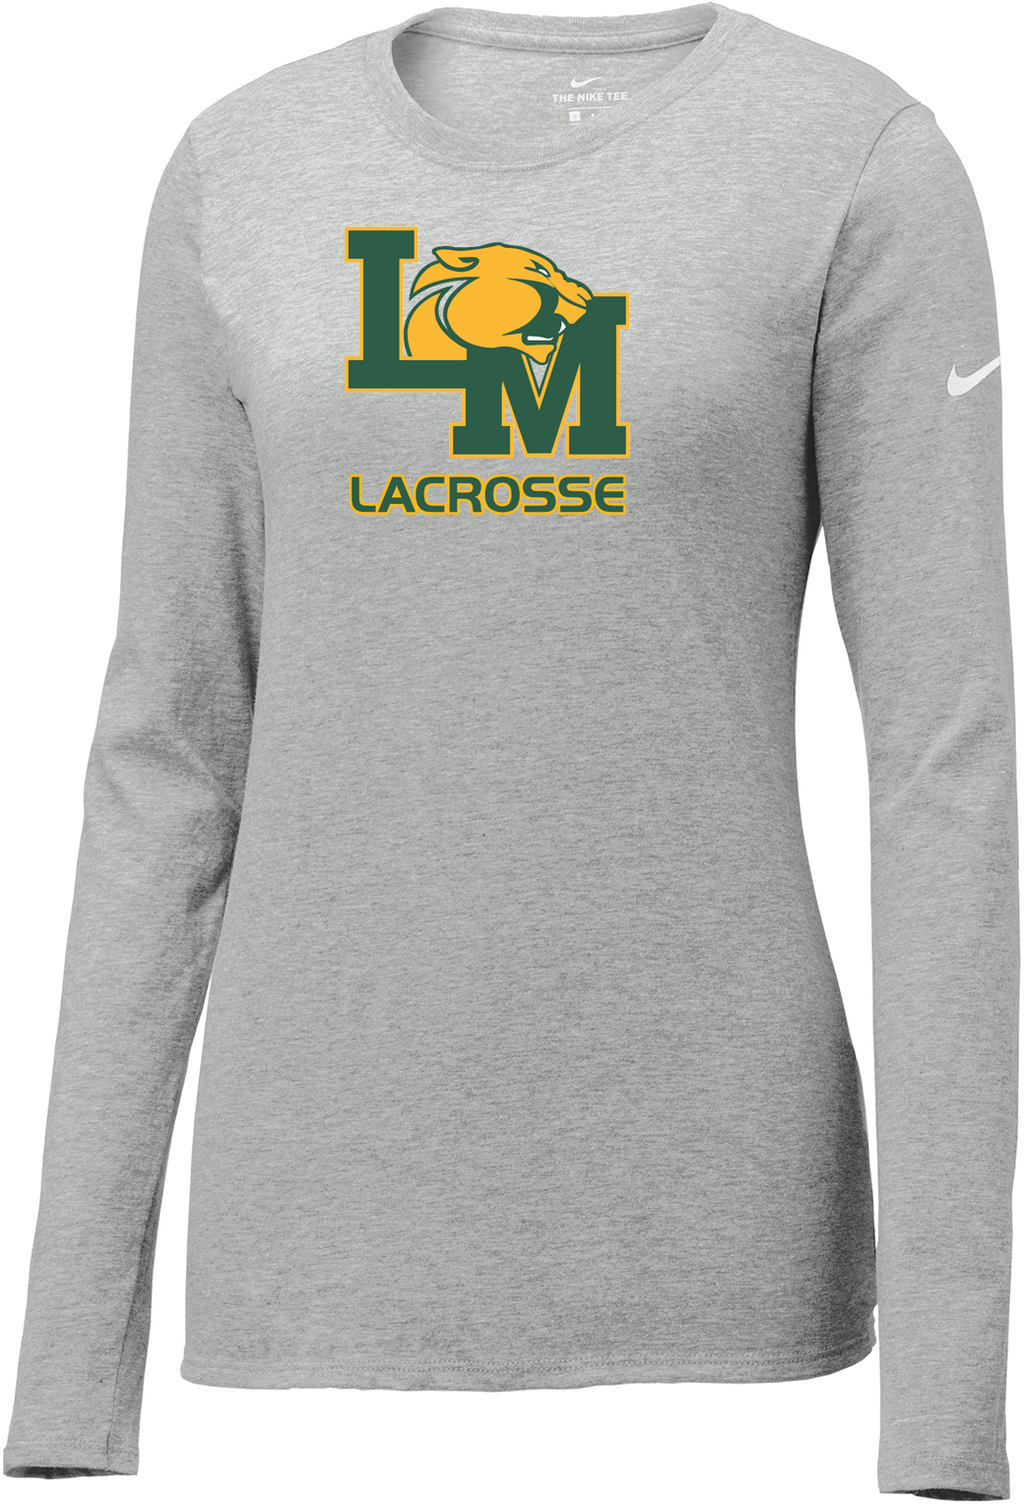 Little Miami Lacrosse Grey Heather Nike Ladies Core Cotton Long Sleeve Tee